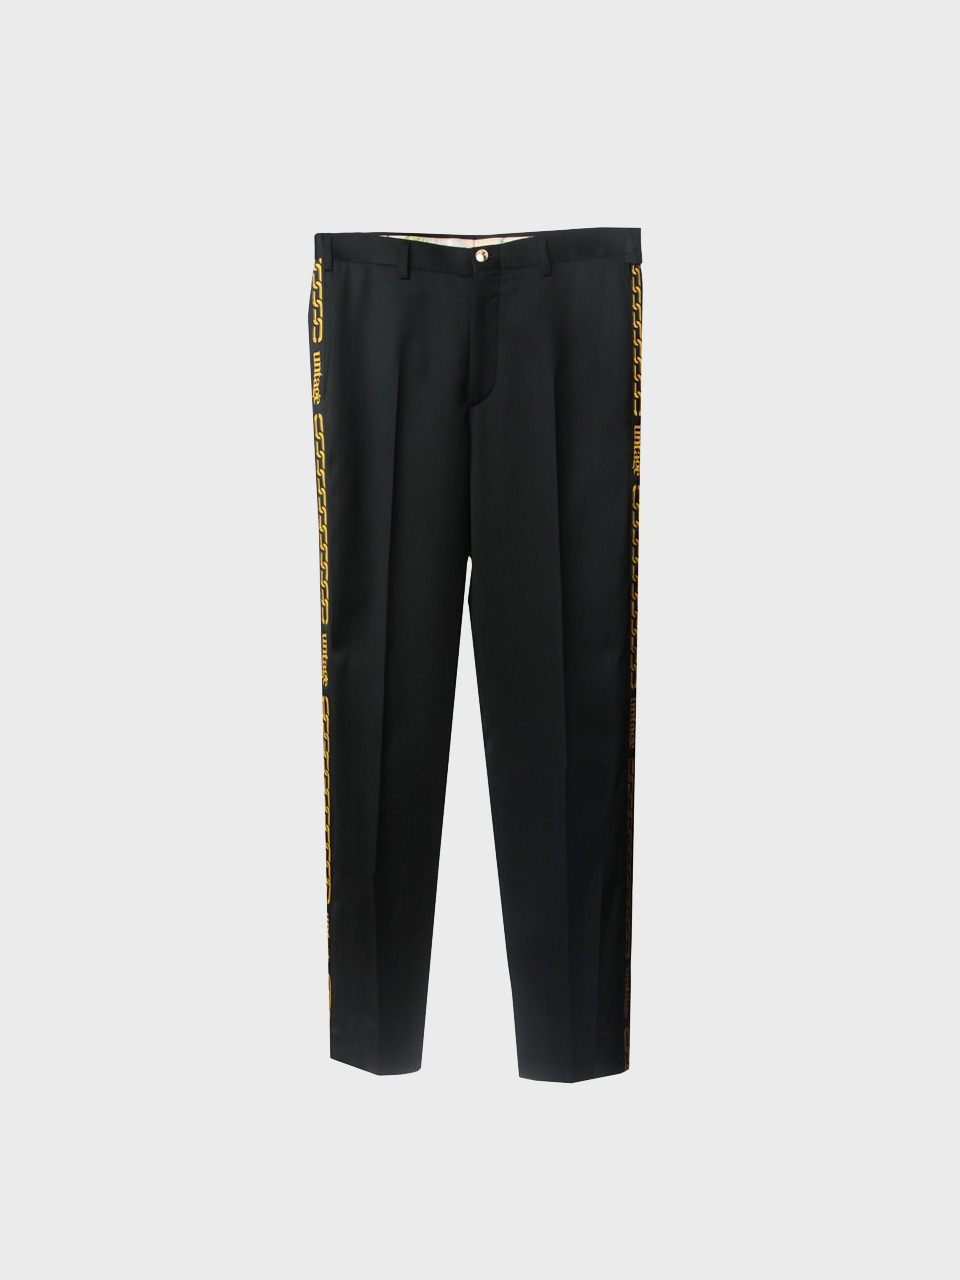 Chain Wool Trousers